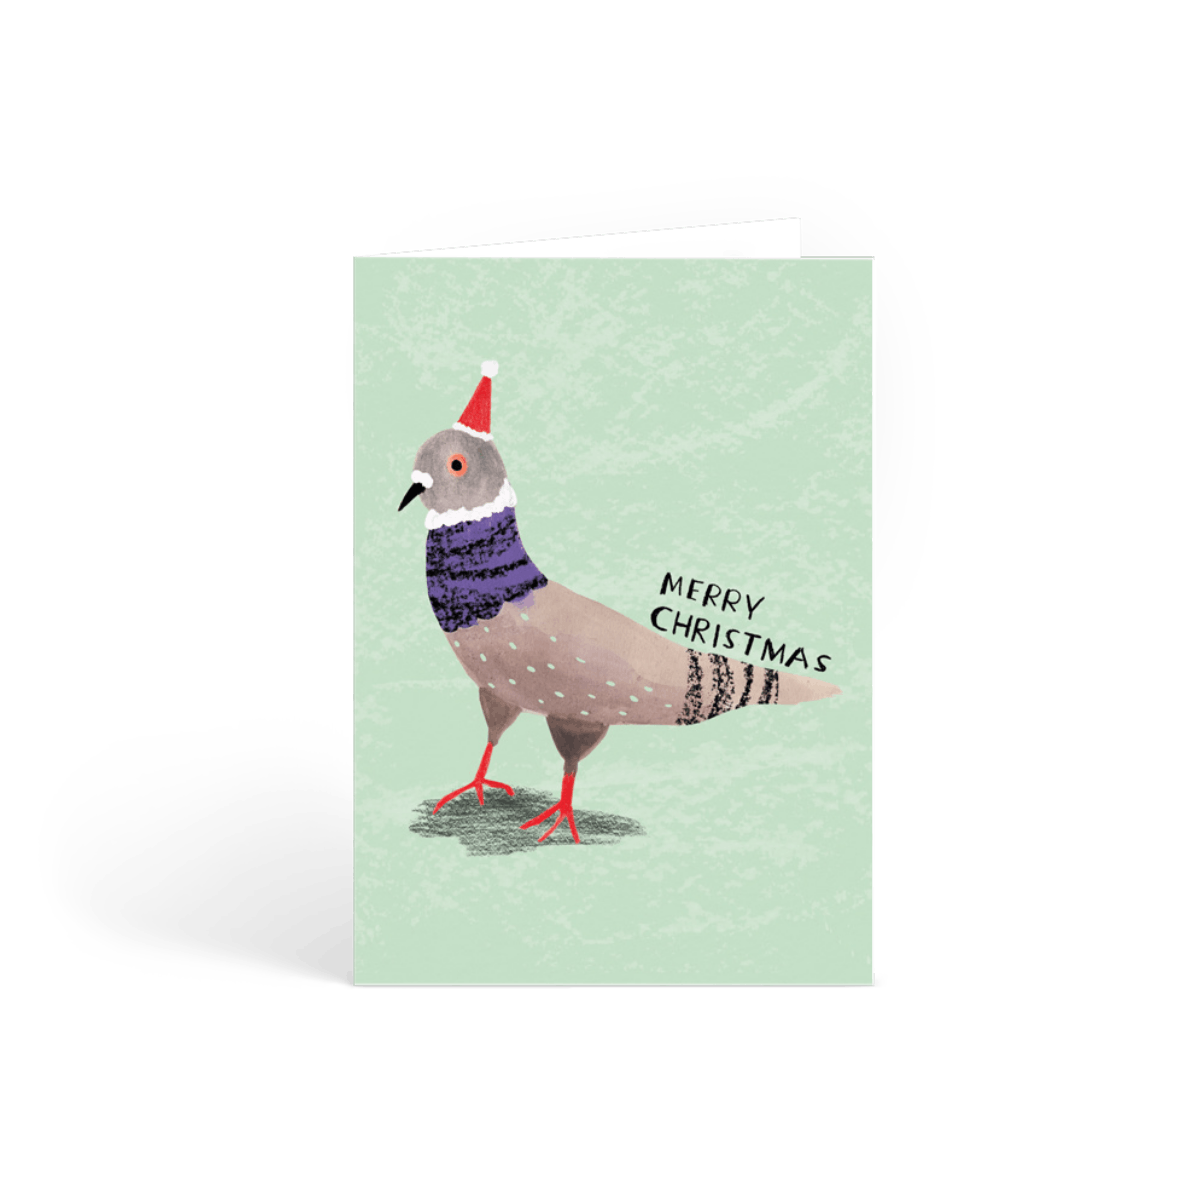 Https%3a%2f%2fwww.papier.com%2fproduct image%2f24381%2f2%2fchristmas pigeon 6102 avant 1498142798.png?ixlib=rb 1.1